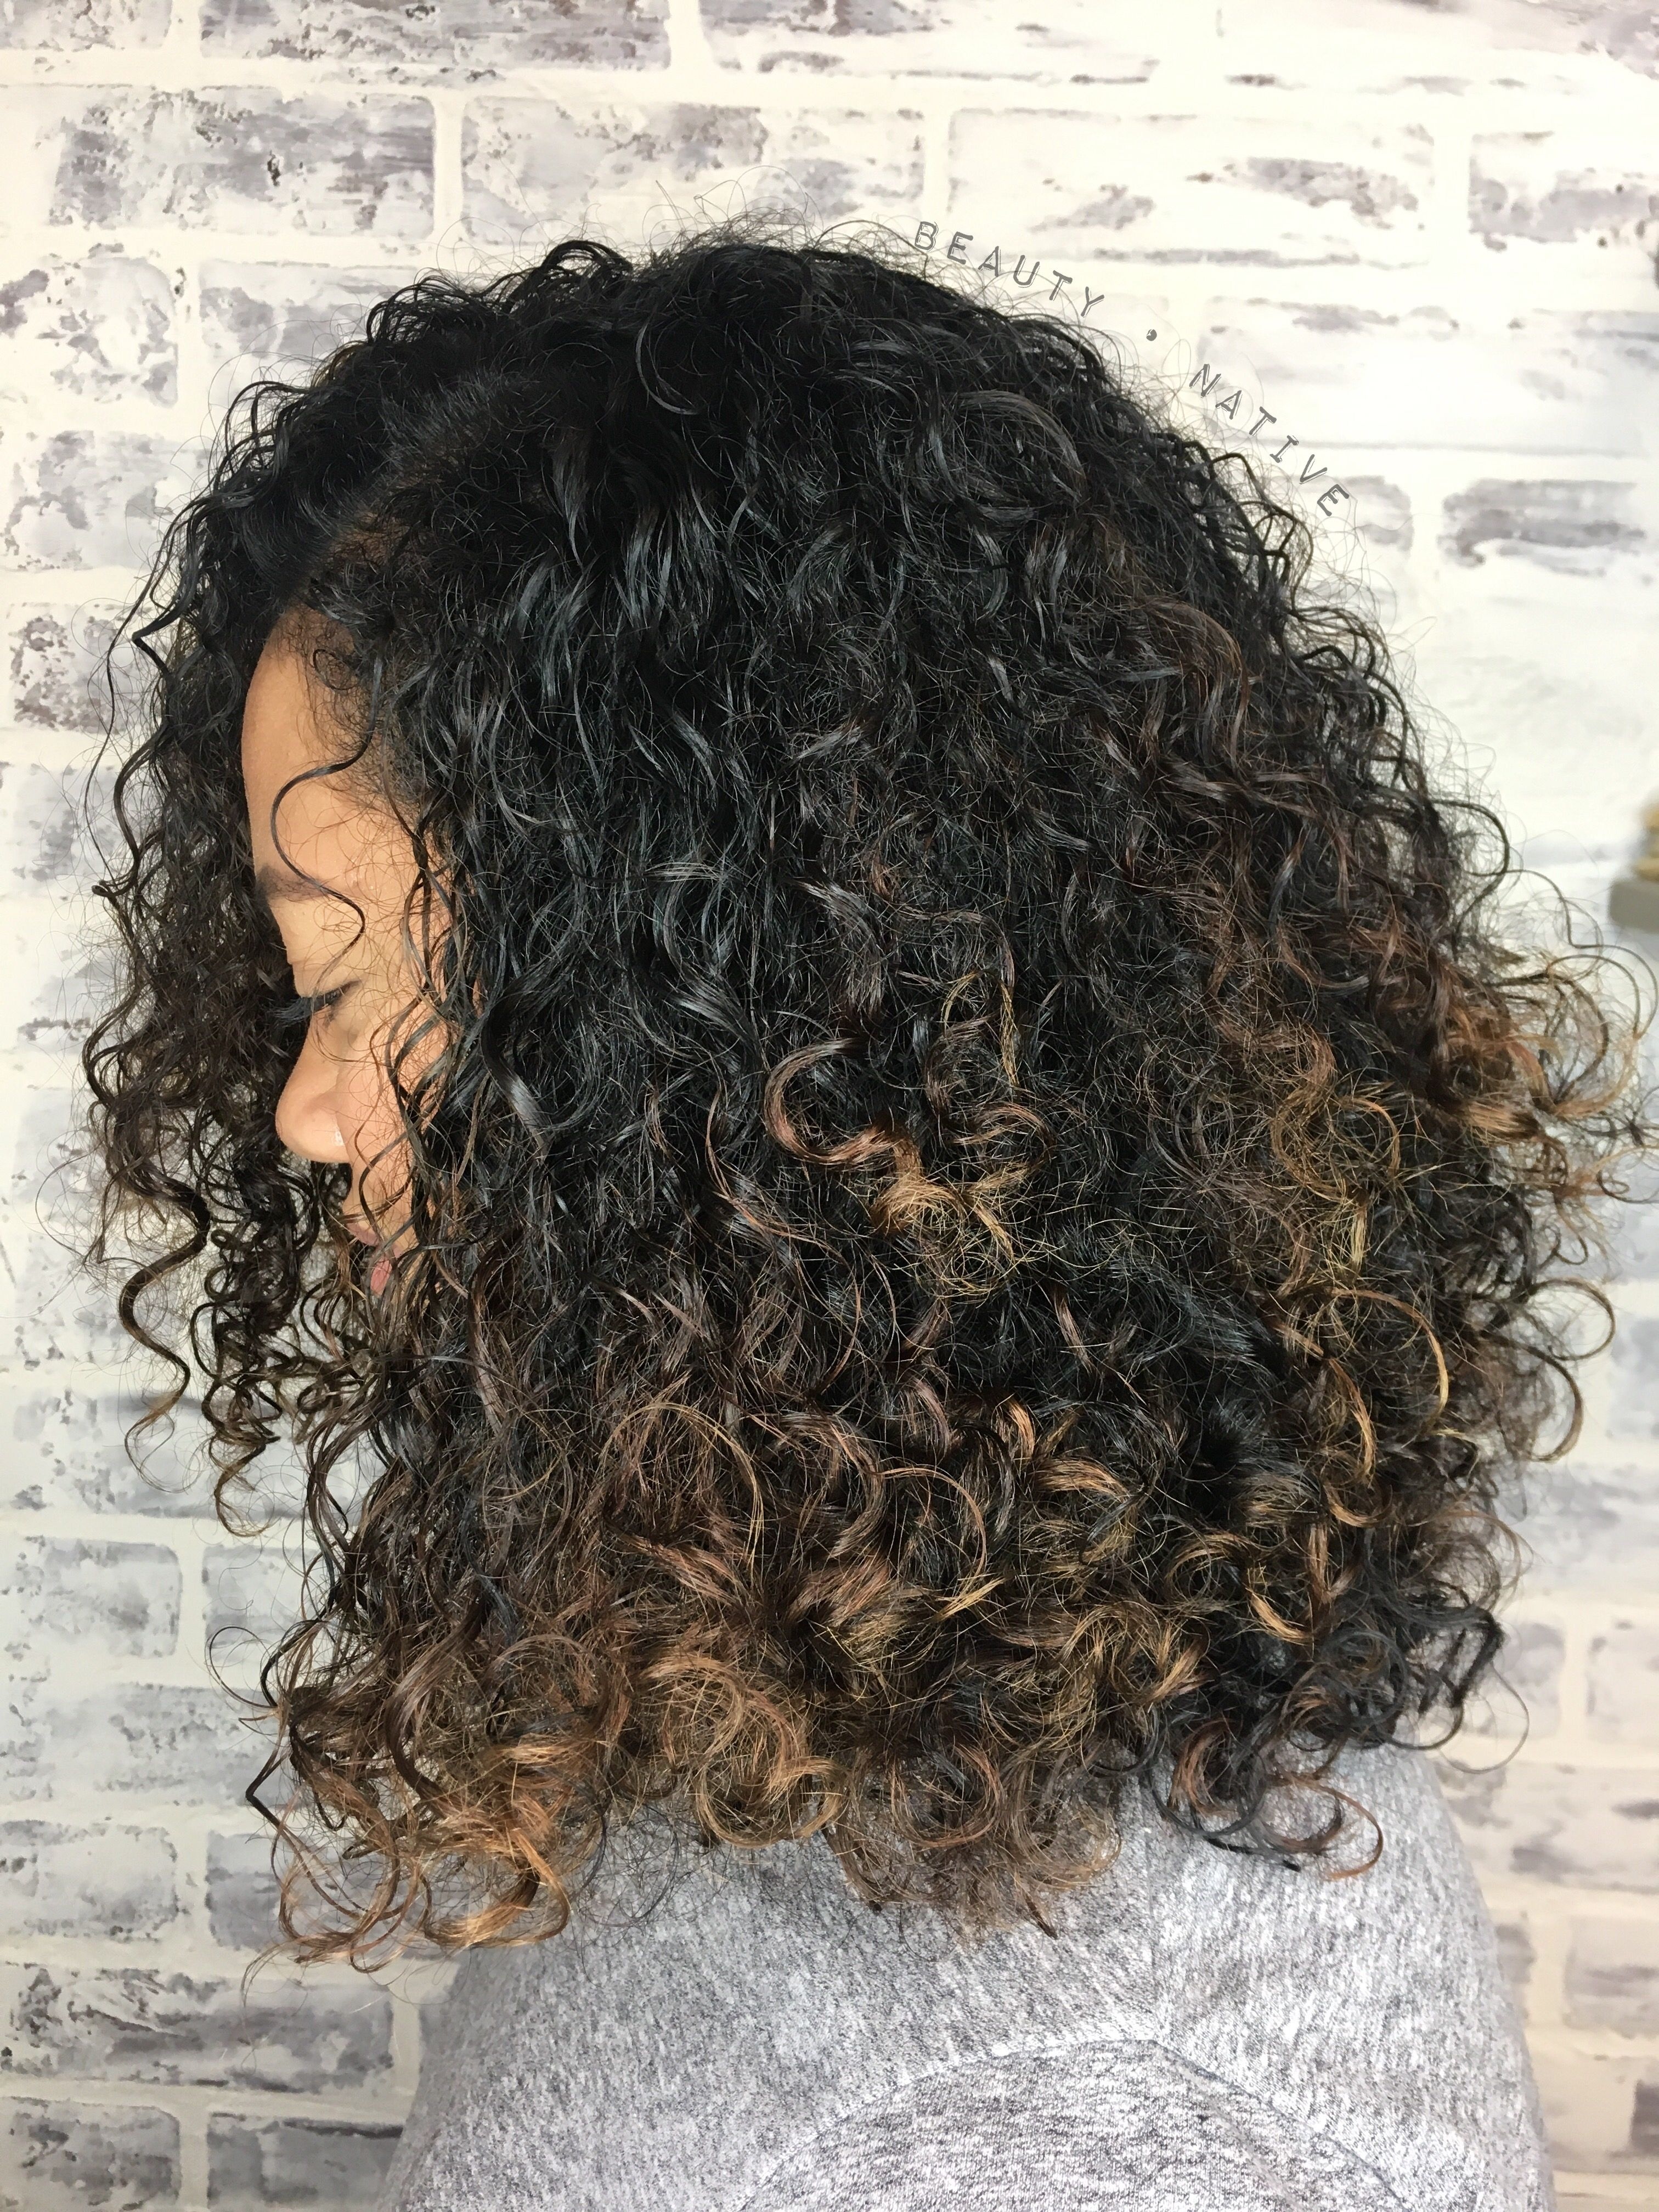 Balayage on natural curly hair.